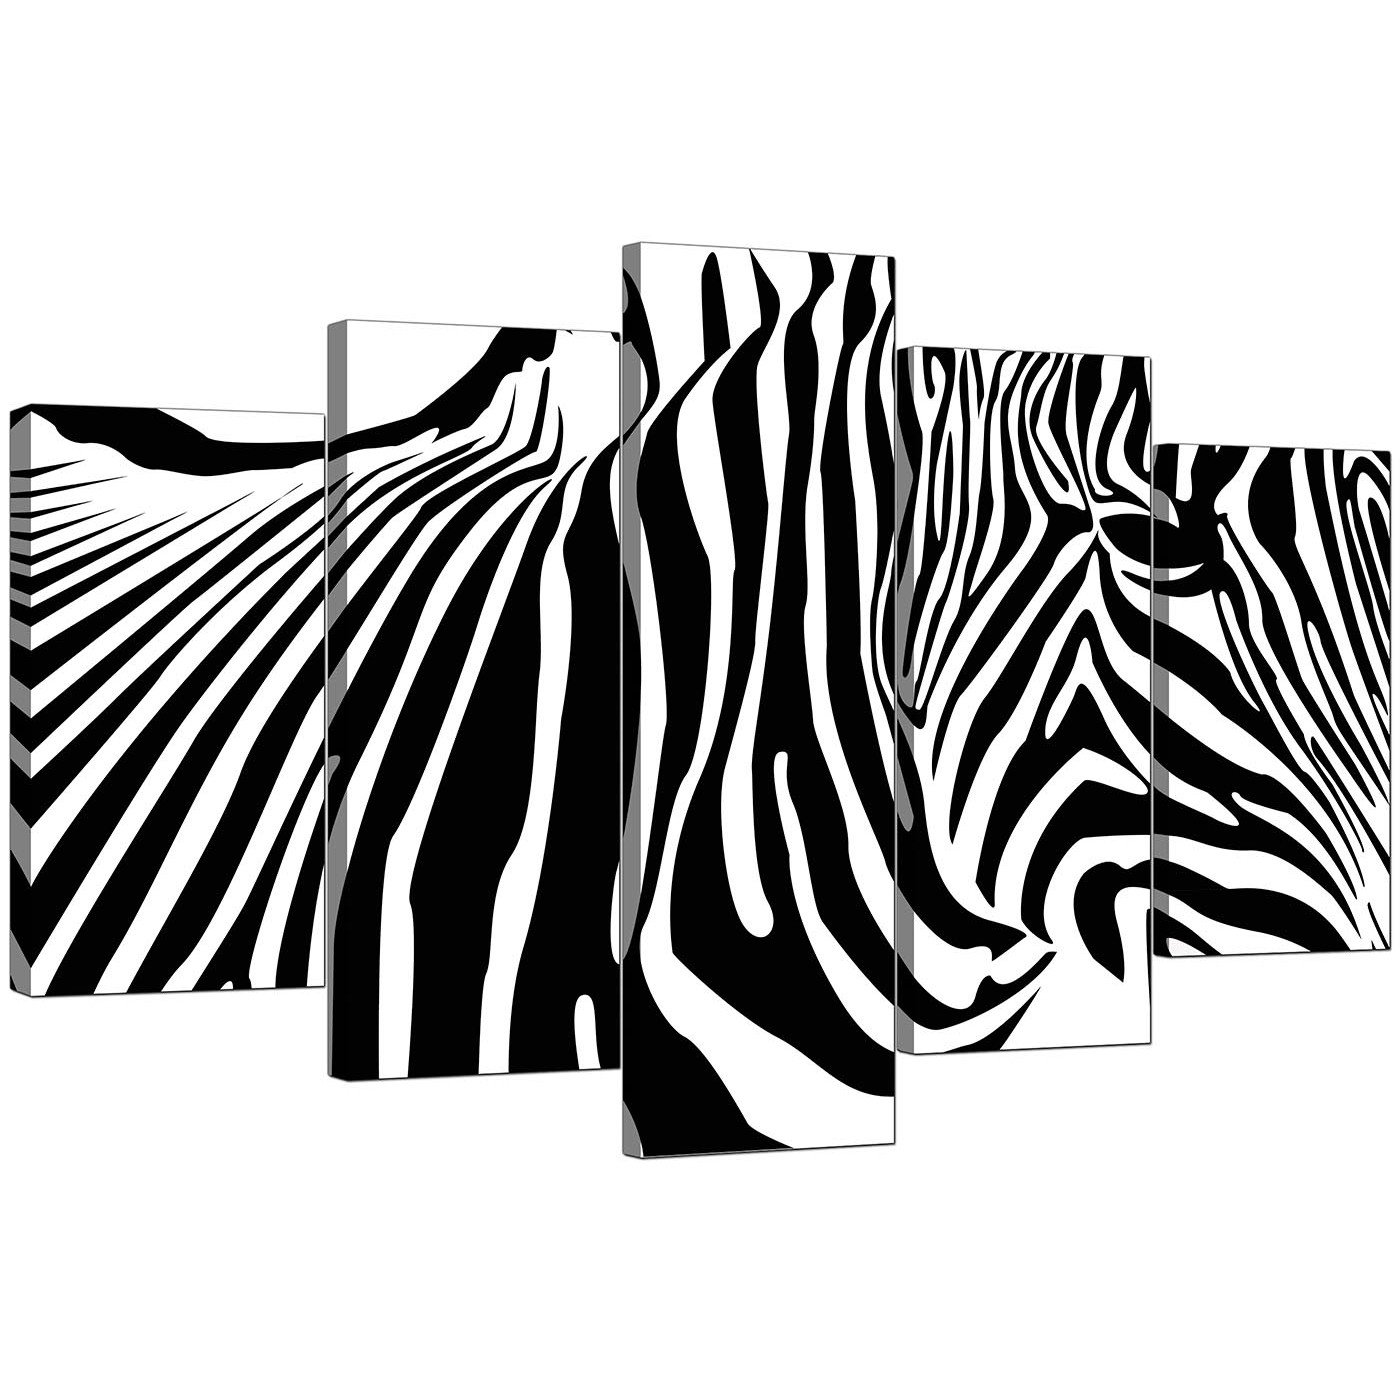 Display gallery item 4 · set of 5 modern black white canvas art display gallery item 5